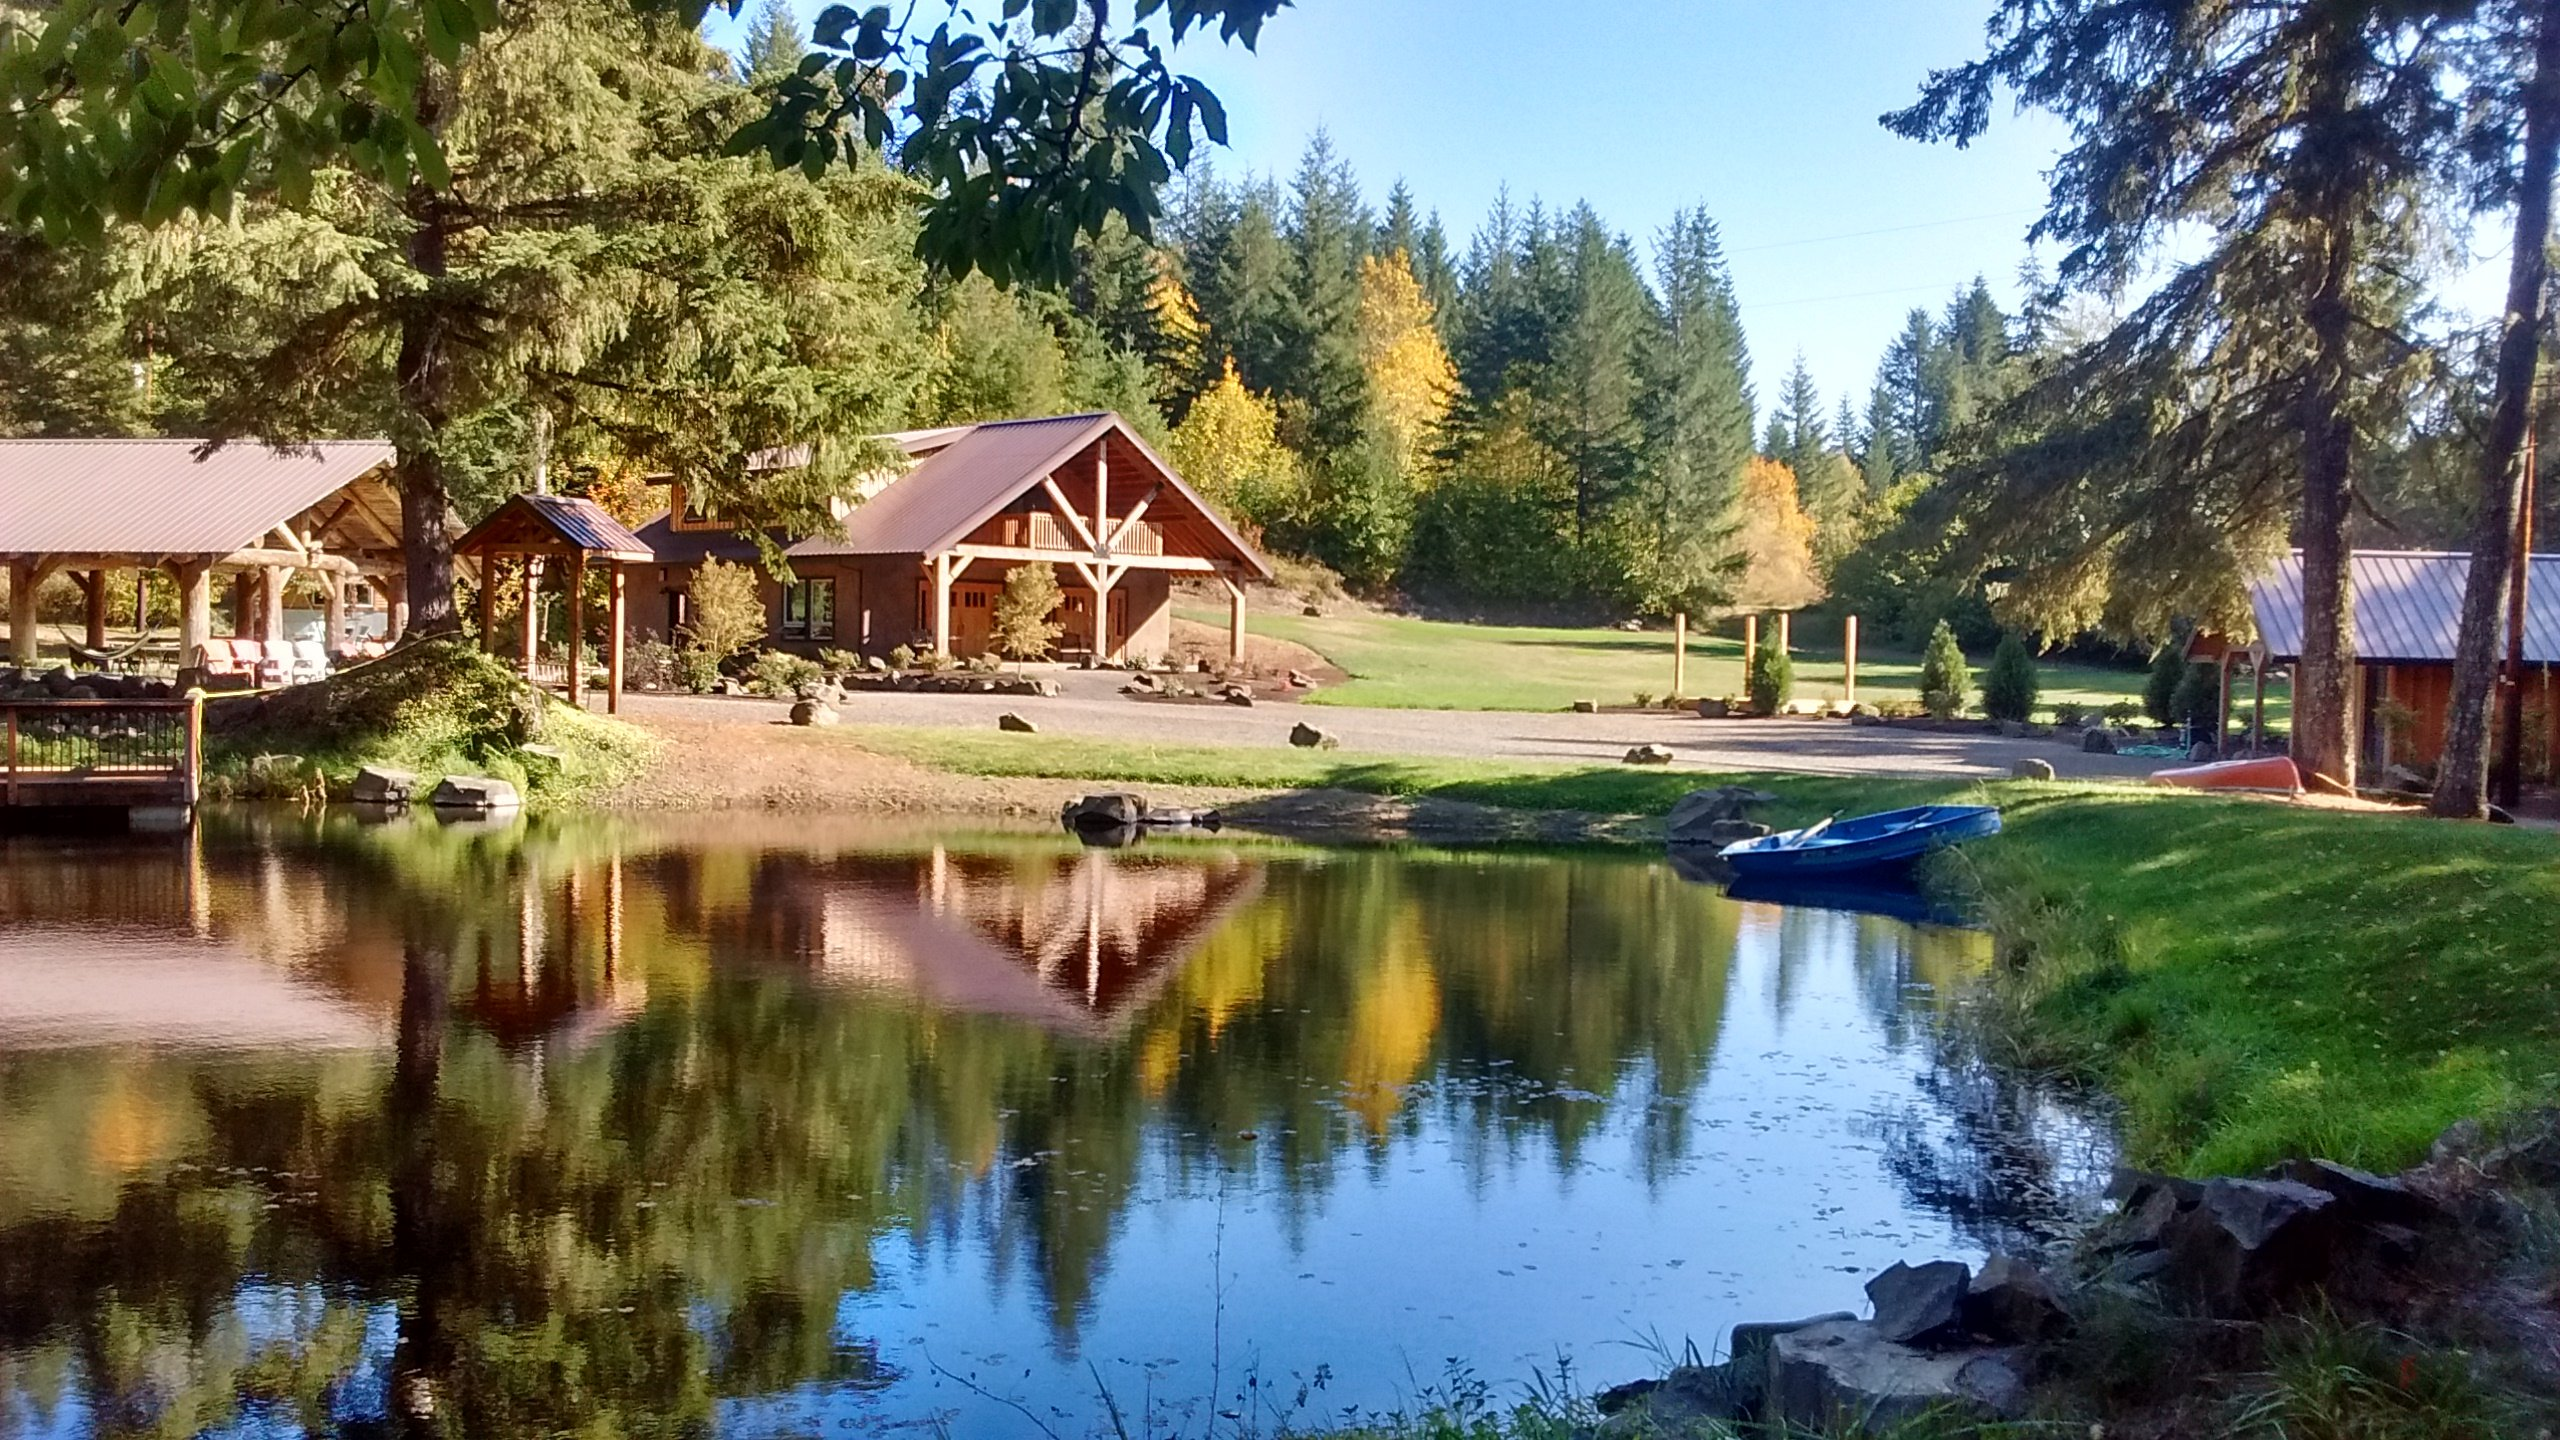 About Vernonia Springs